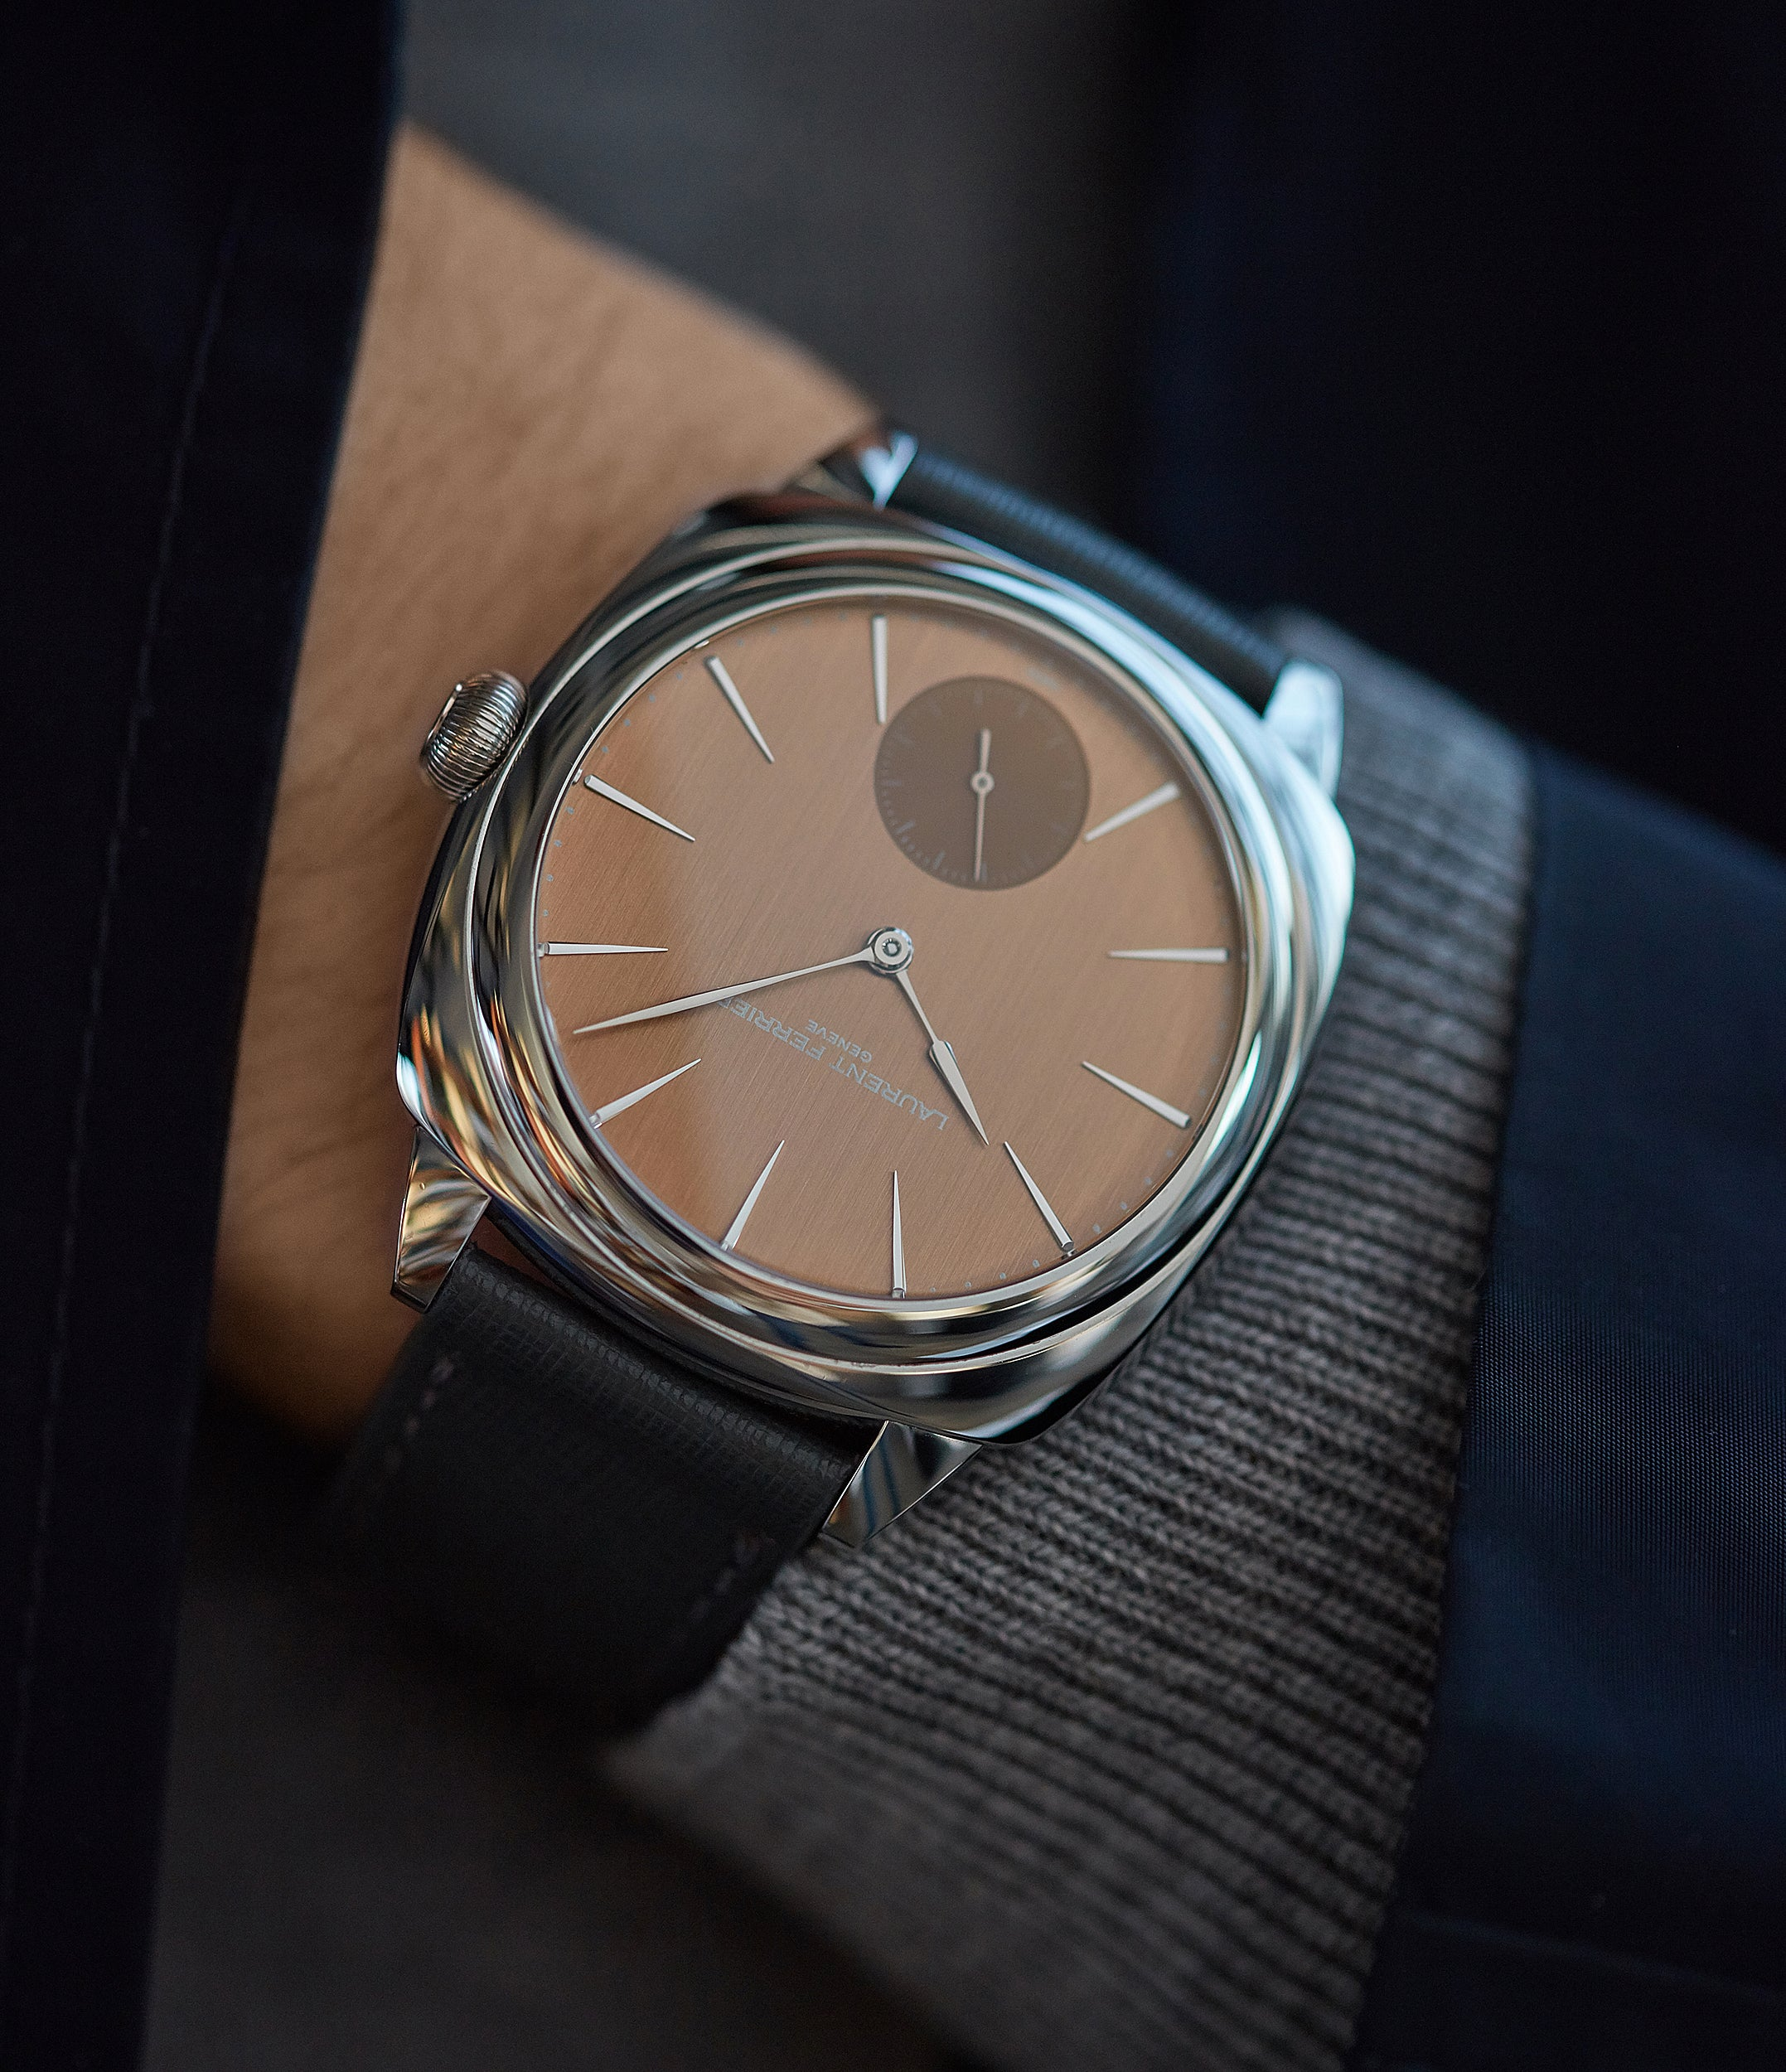 men's dress watch Laurent Ferrier Galet Square Micro-rotor salmon dial steel pre-owned watch for sale online at A Collected Man London UK specialist of independent watchmakers